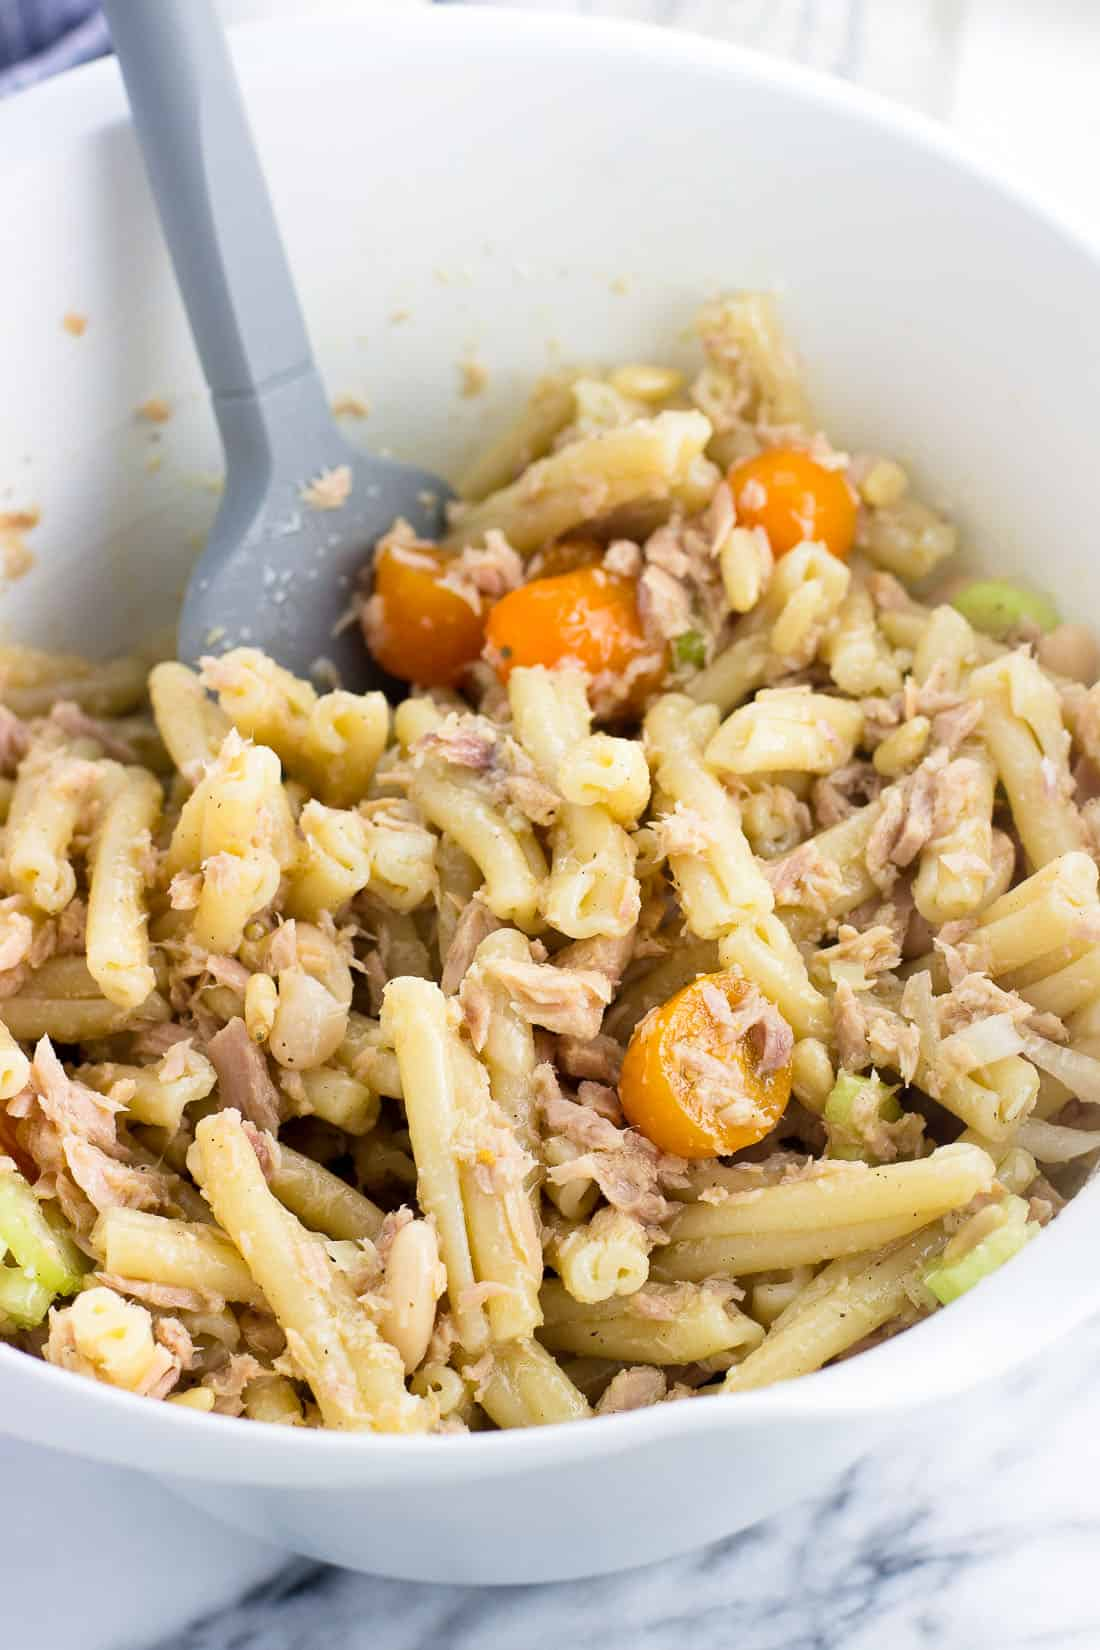 Tuna pasta salad mixed together in a bowl before adding the arugula